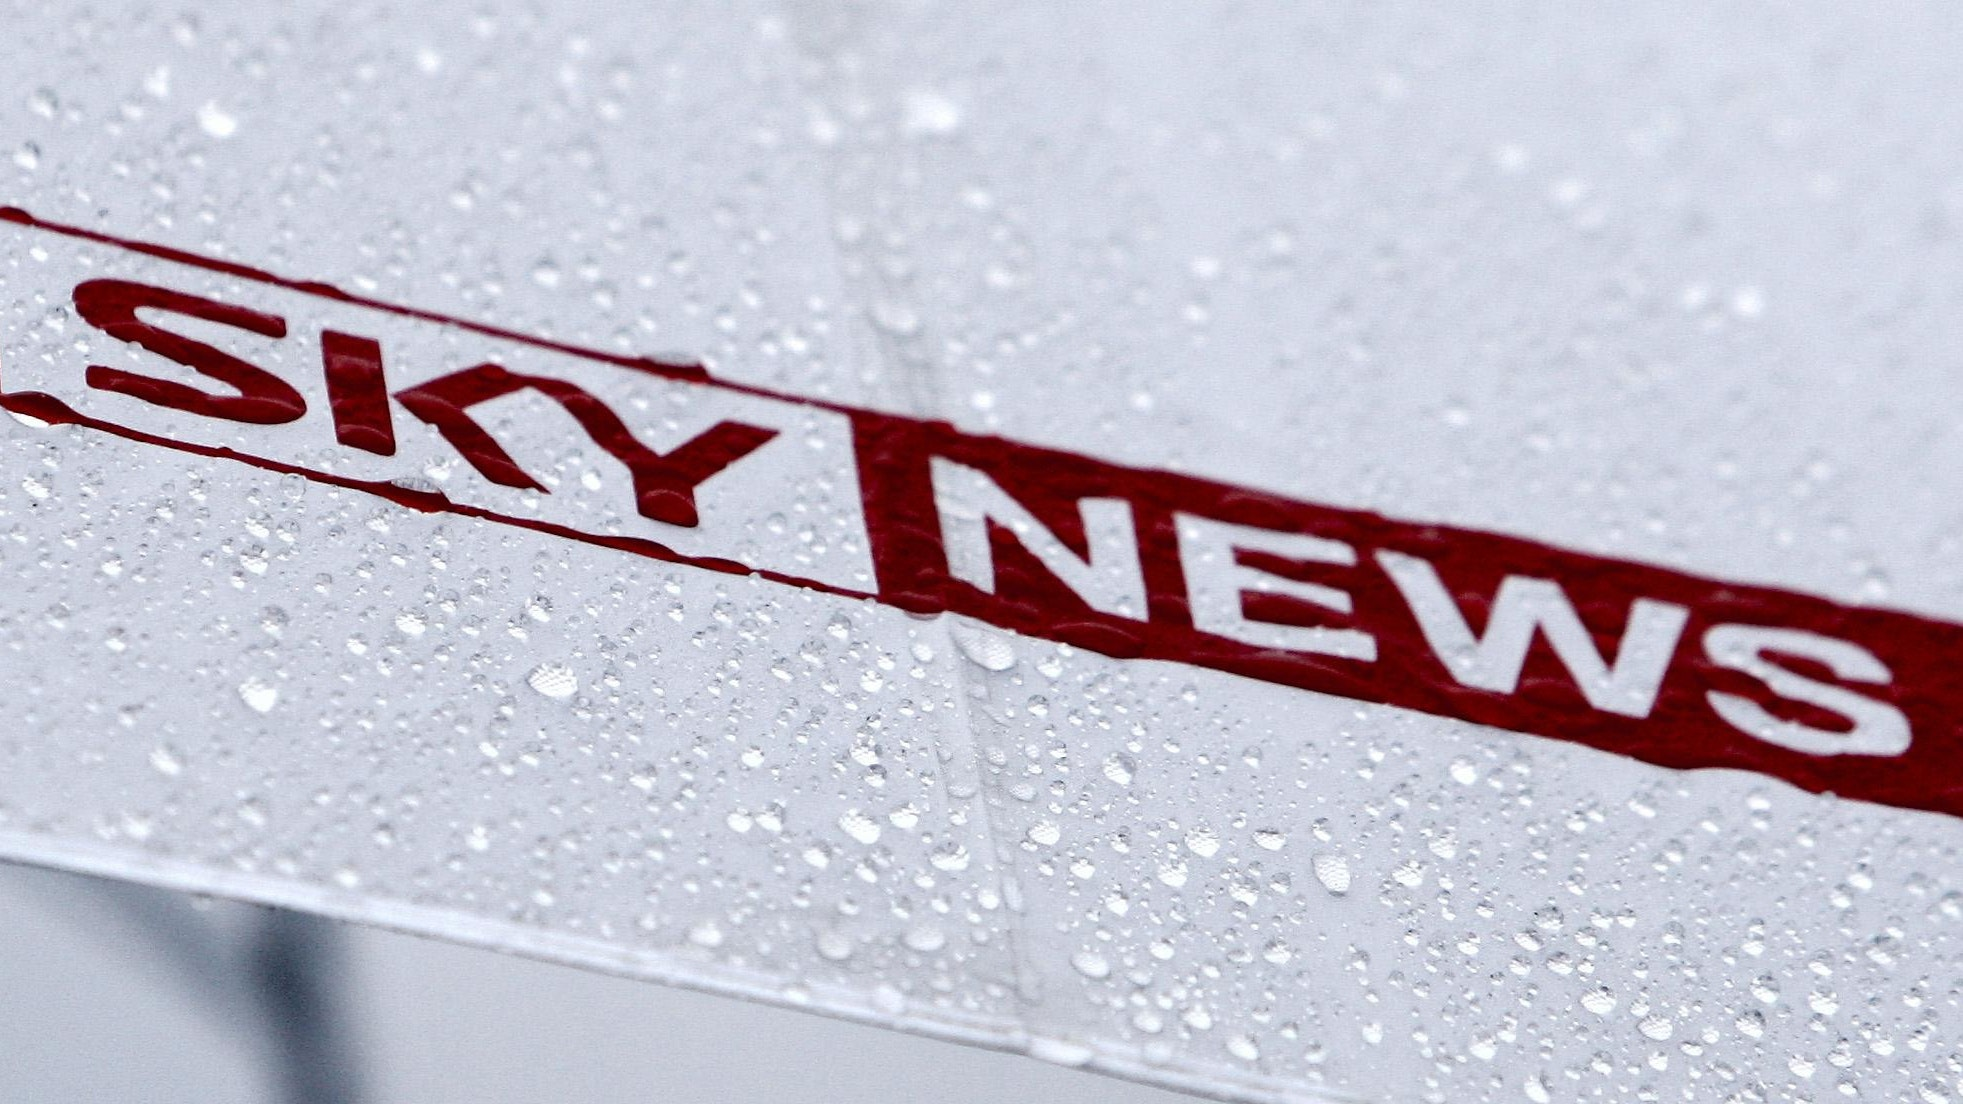 Fox pledges Sky News' editorial independence